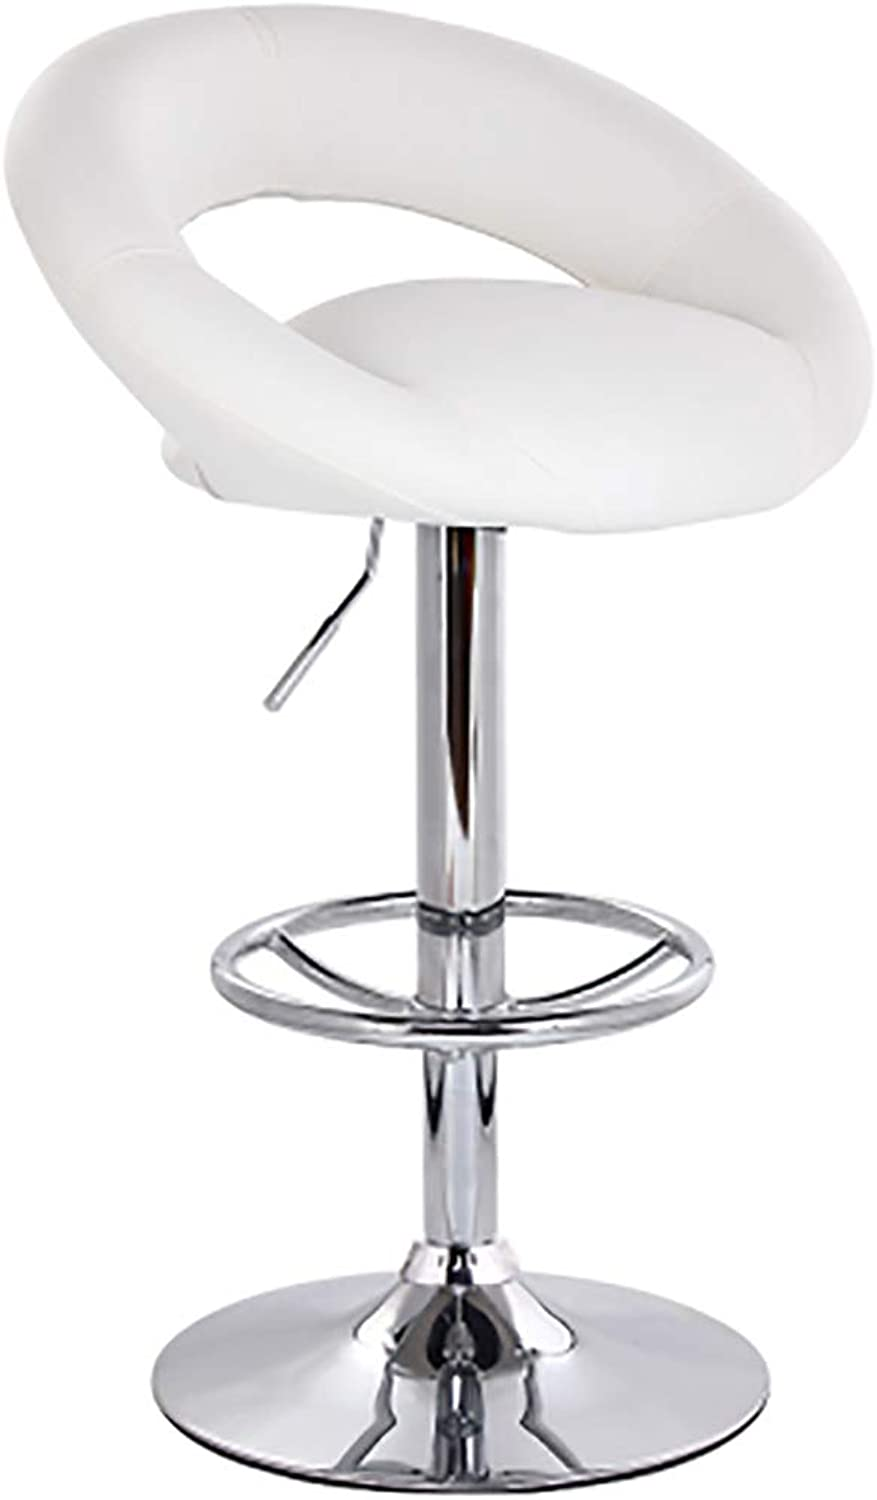 Quality Kitchen Breakfast Bar Stools Bar Stool Made of Artificial Leather, stools with Handle Height Adjustment (color   White)